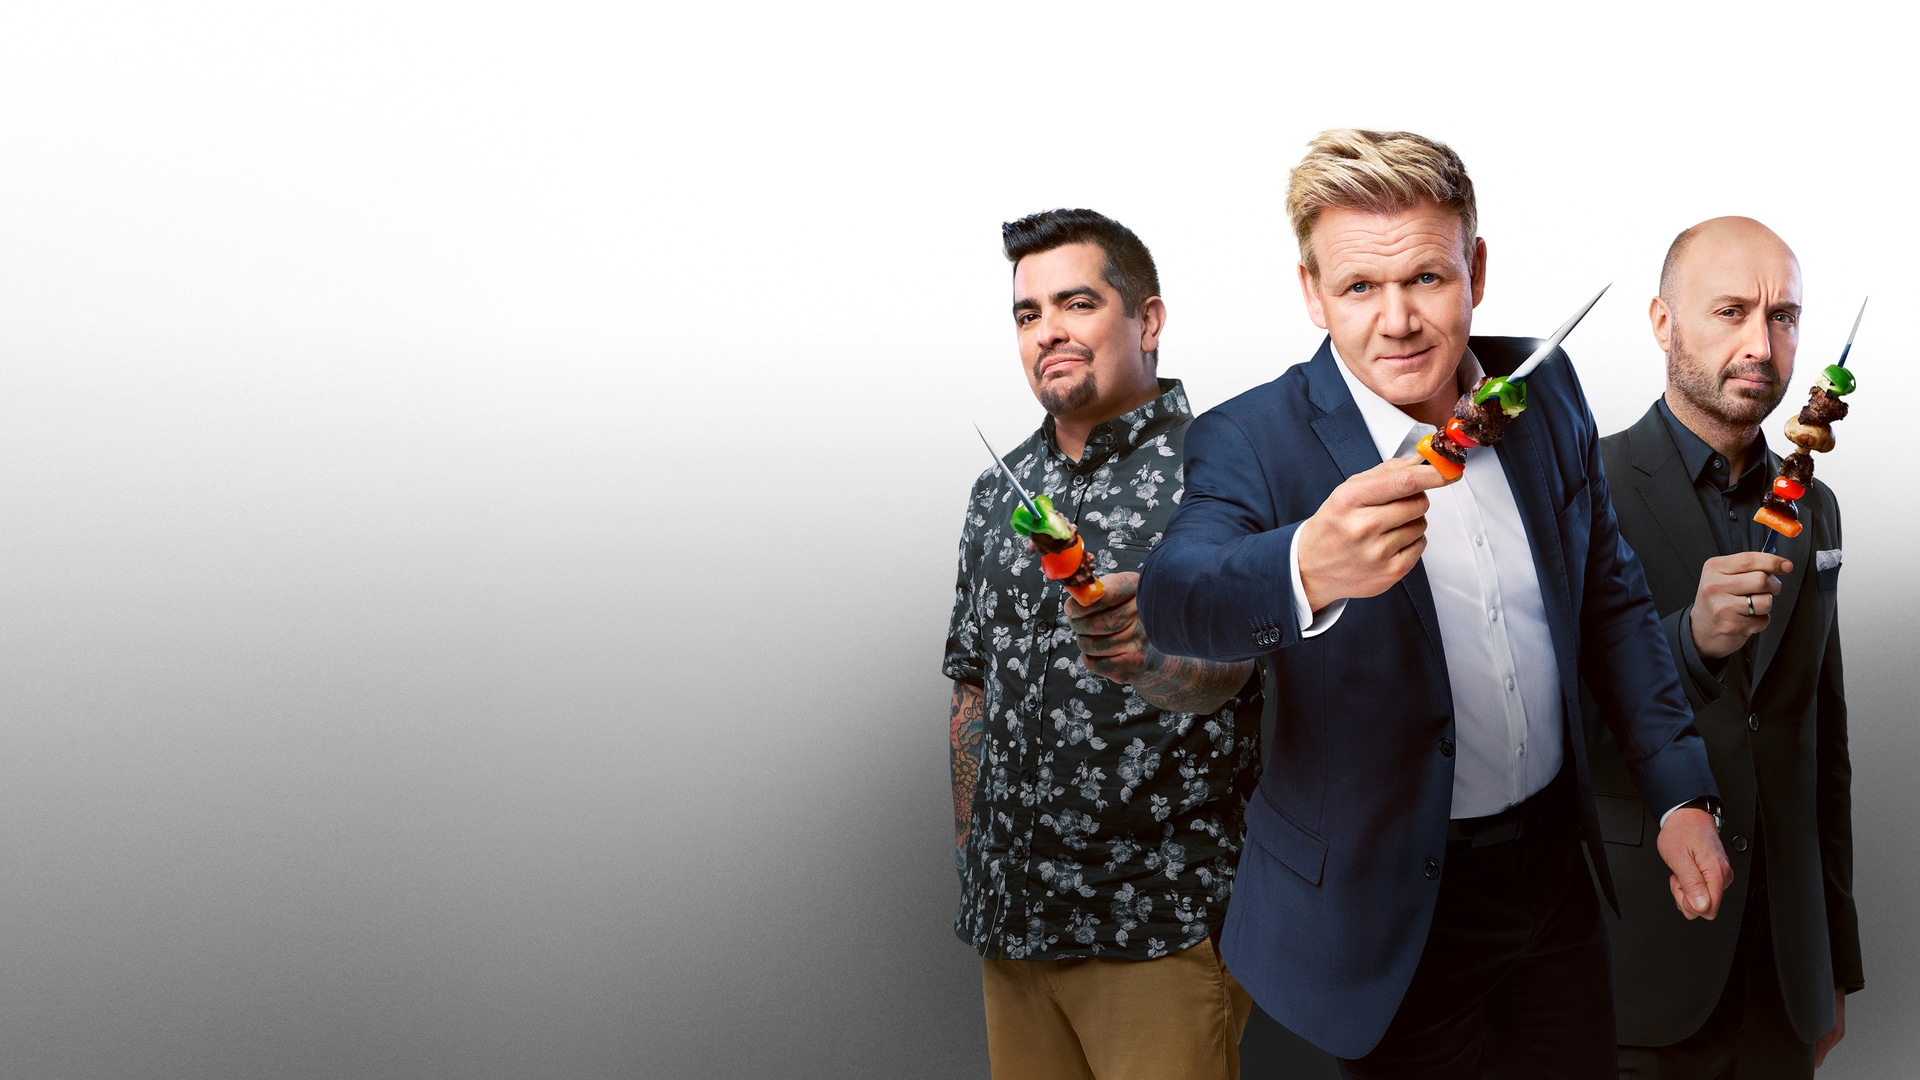 About the Show | MasterChef with Gordon Ramsay on FOX